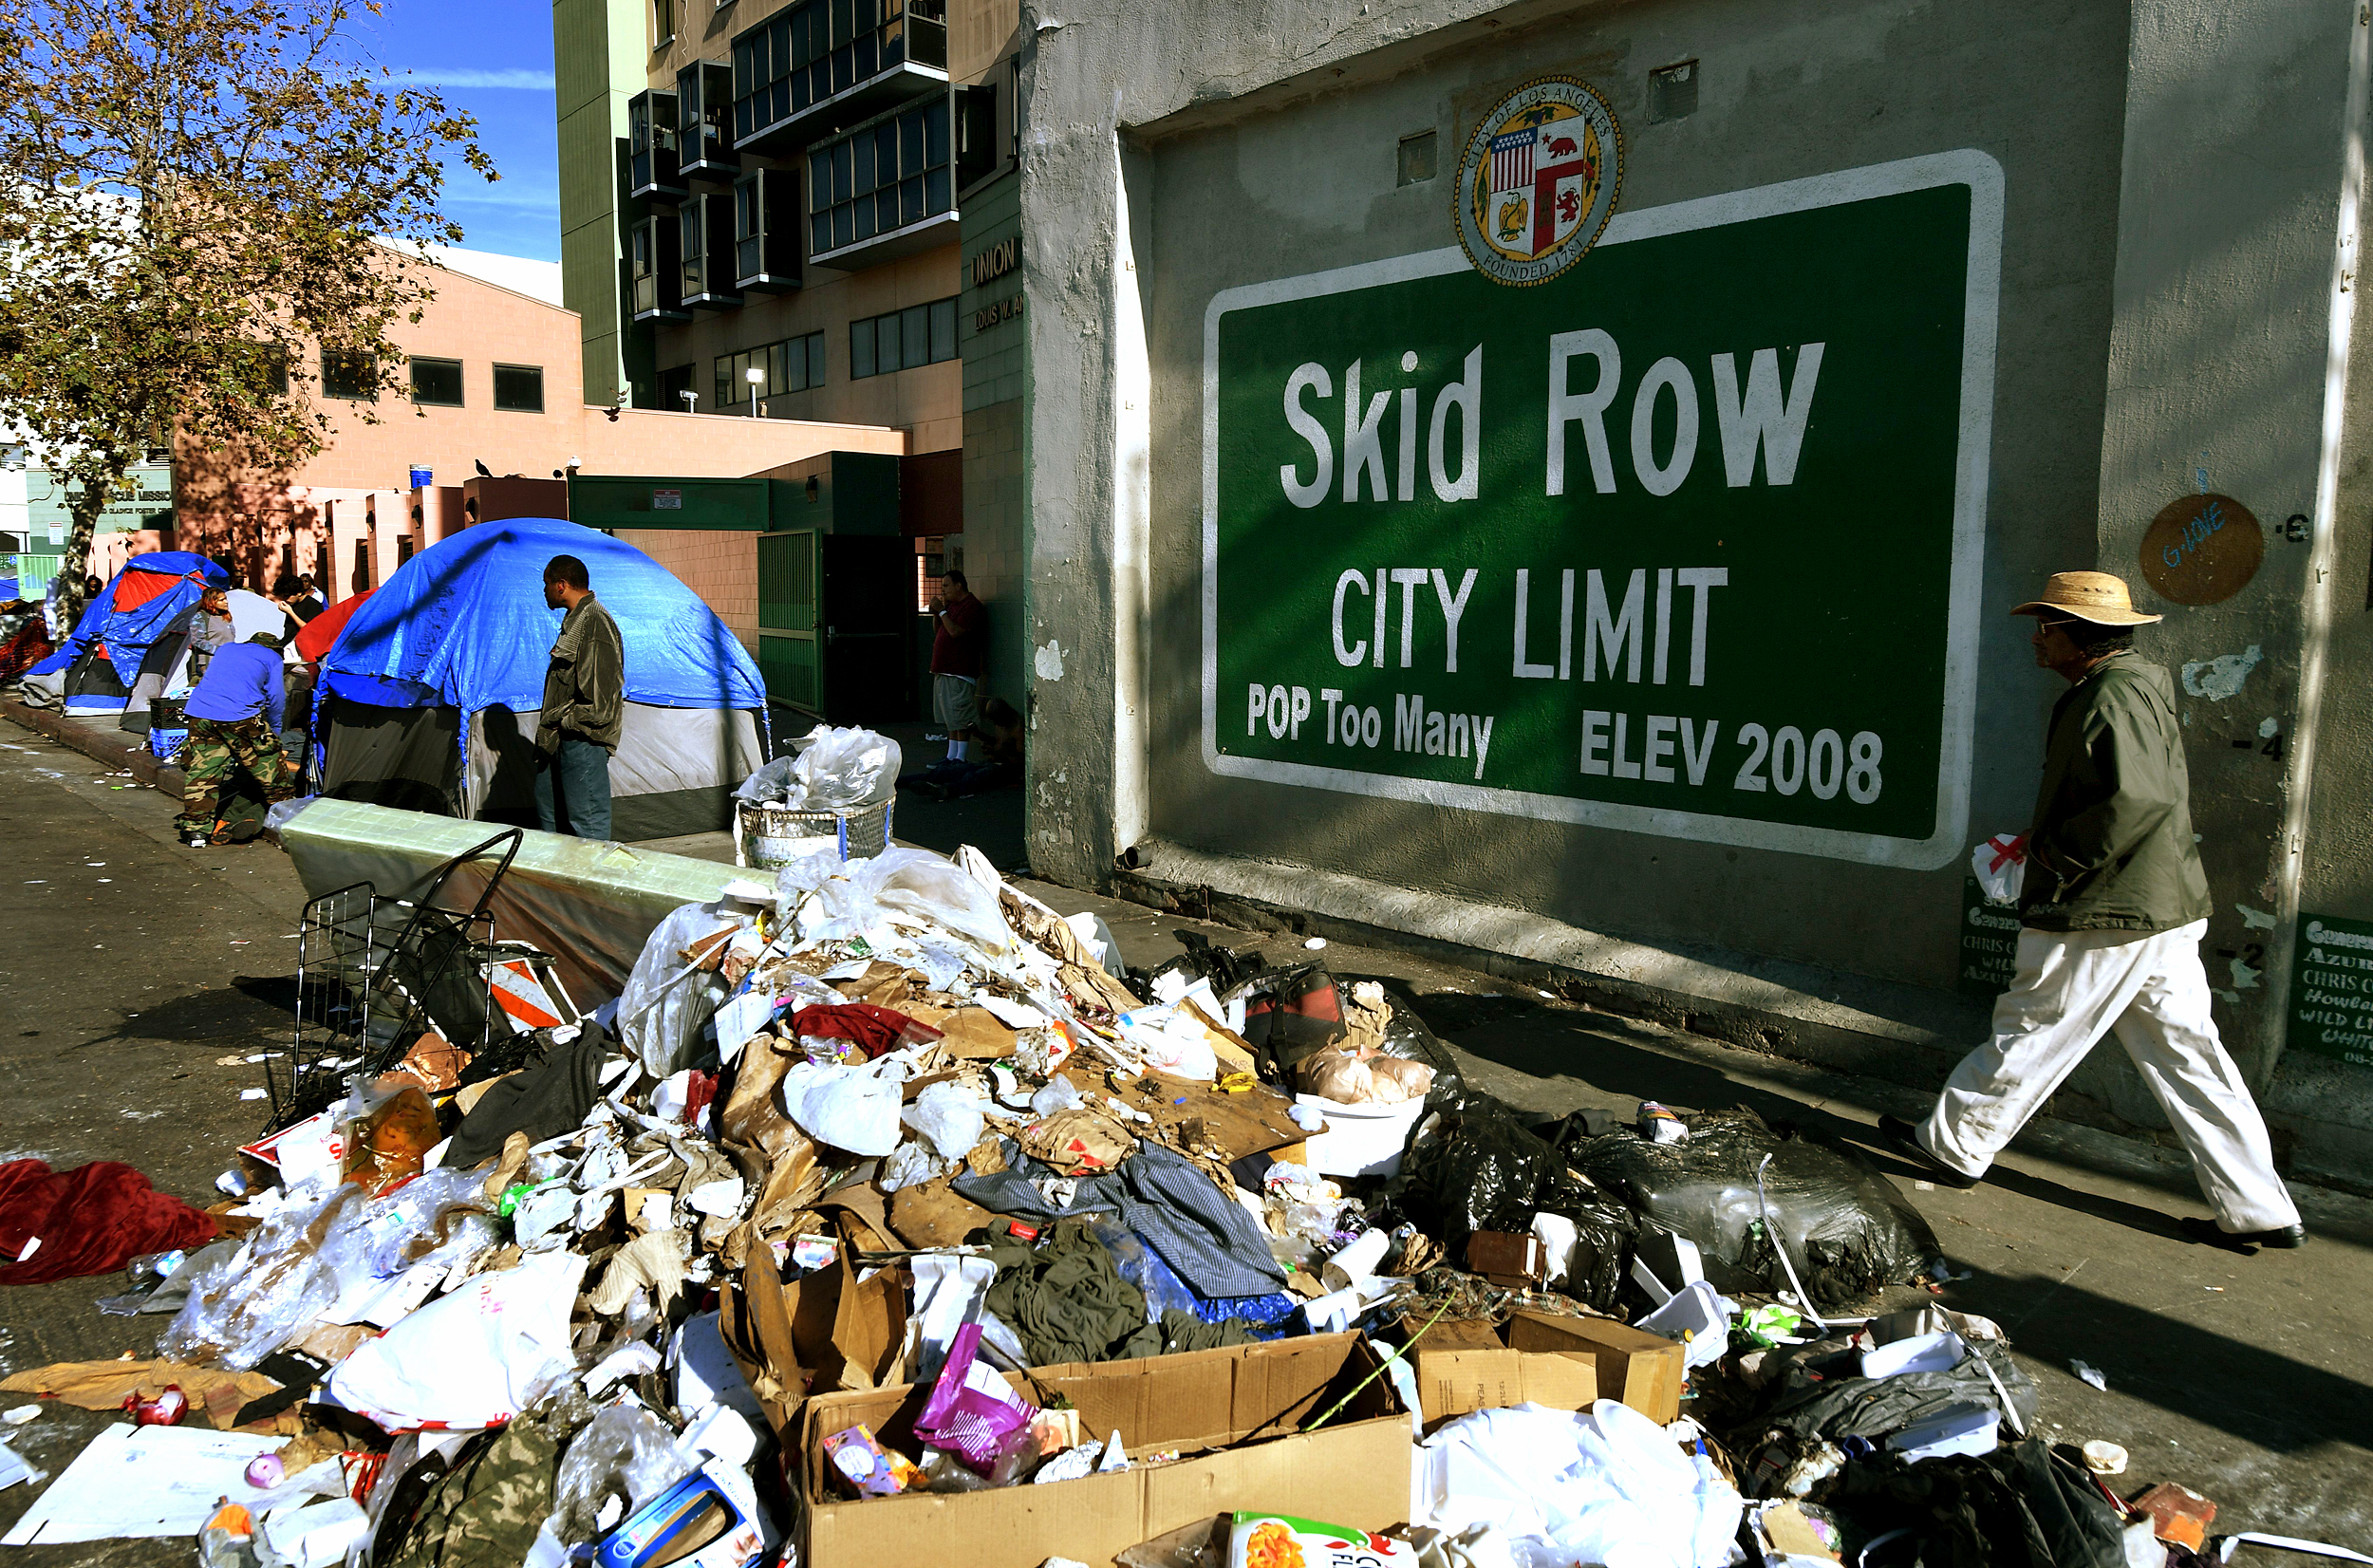 'Typhus zone': Rats and trash infest Los Angeles' skid row ...